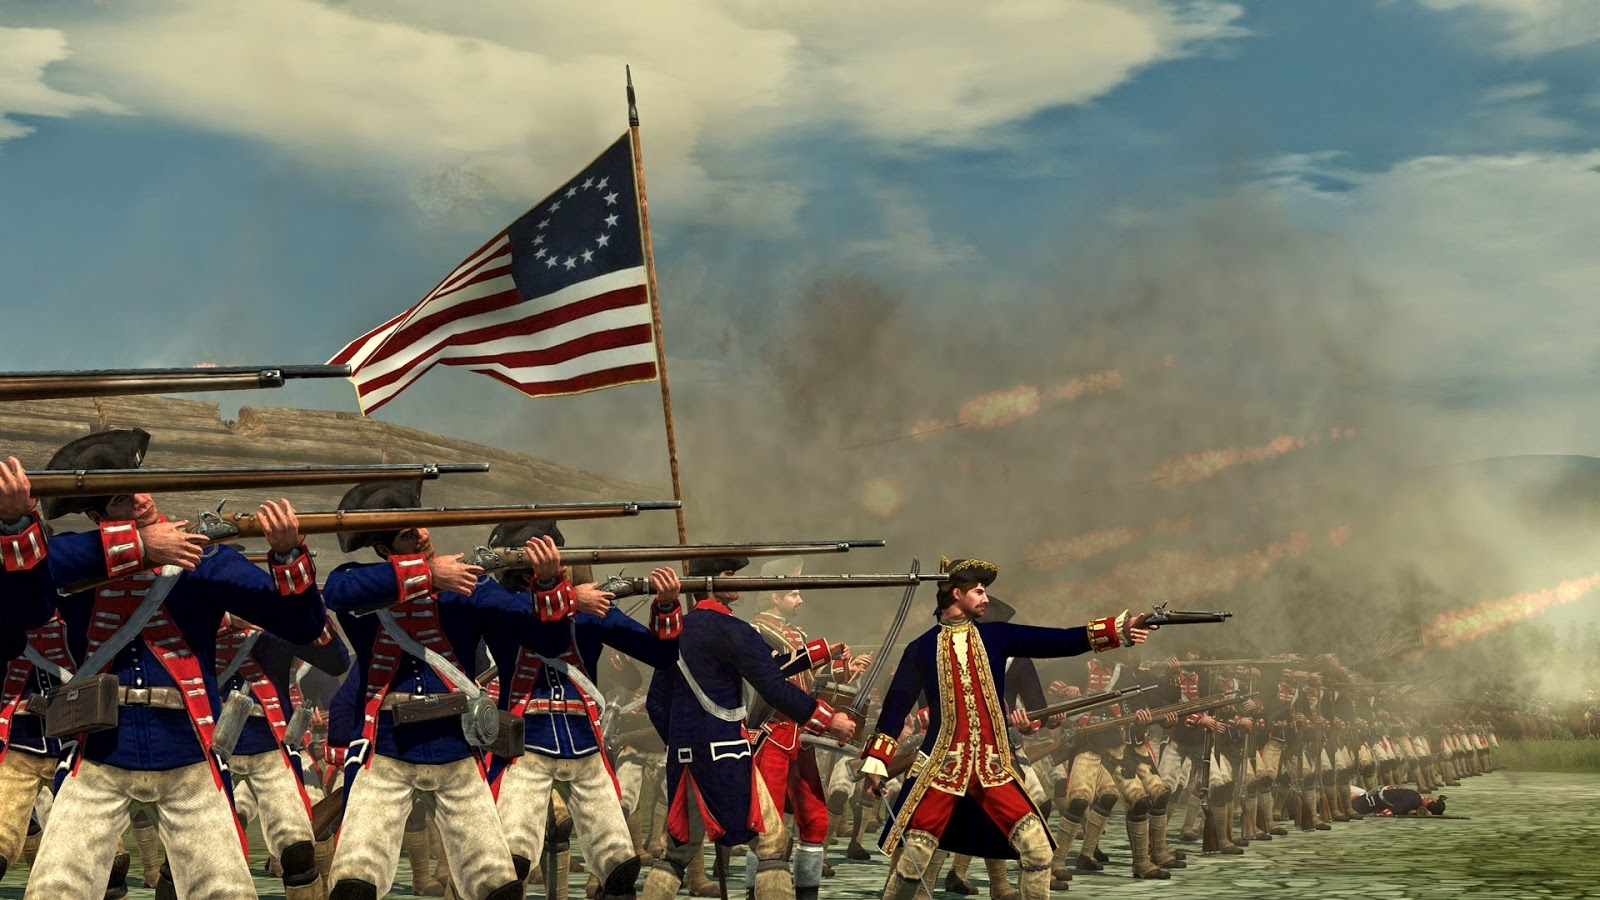 30 image for desktop: revolutionary war